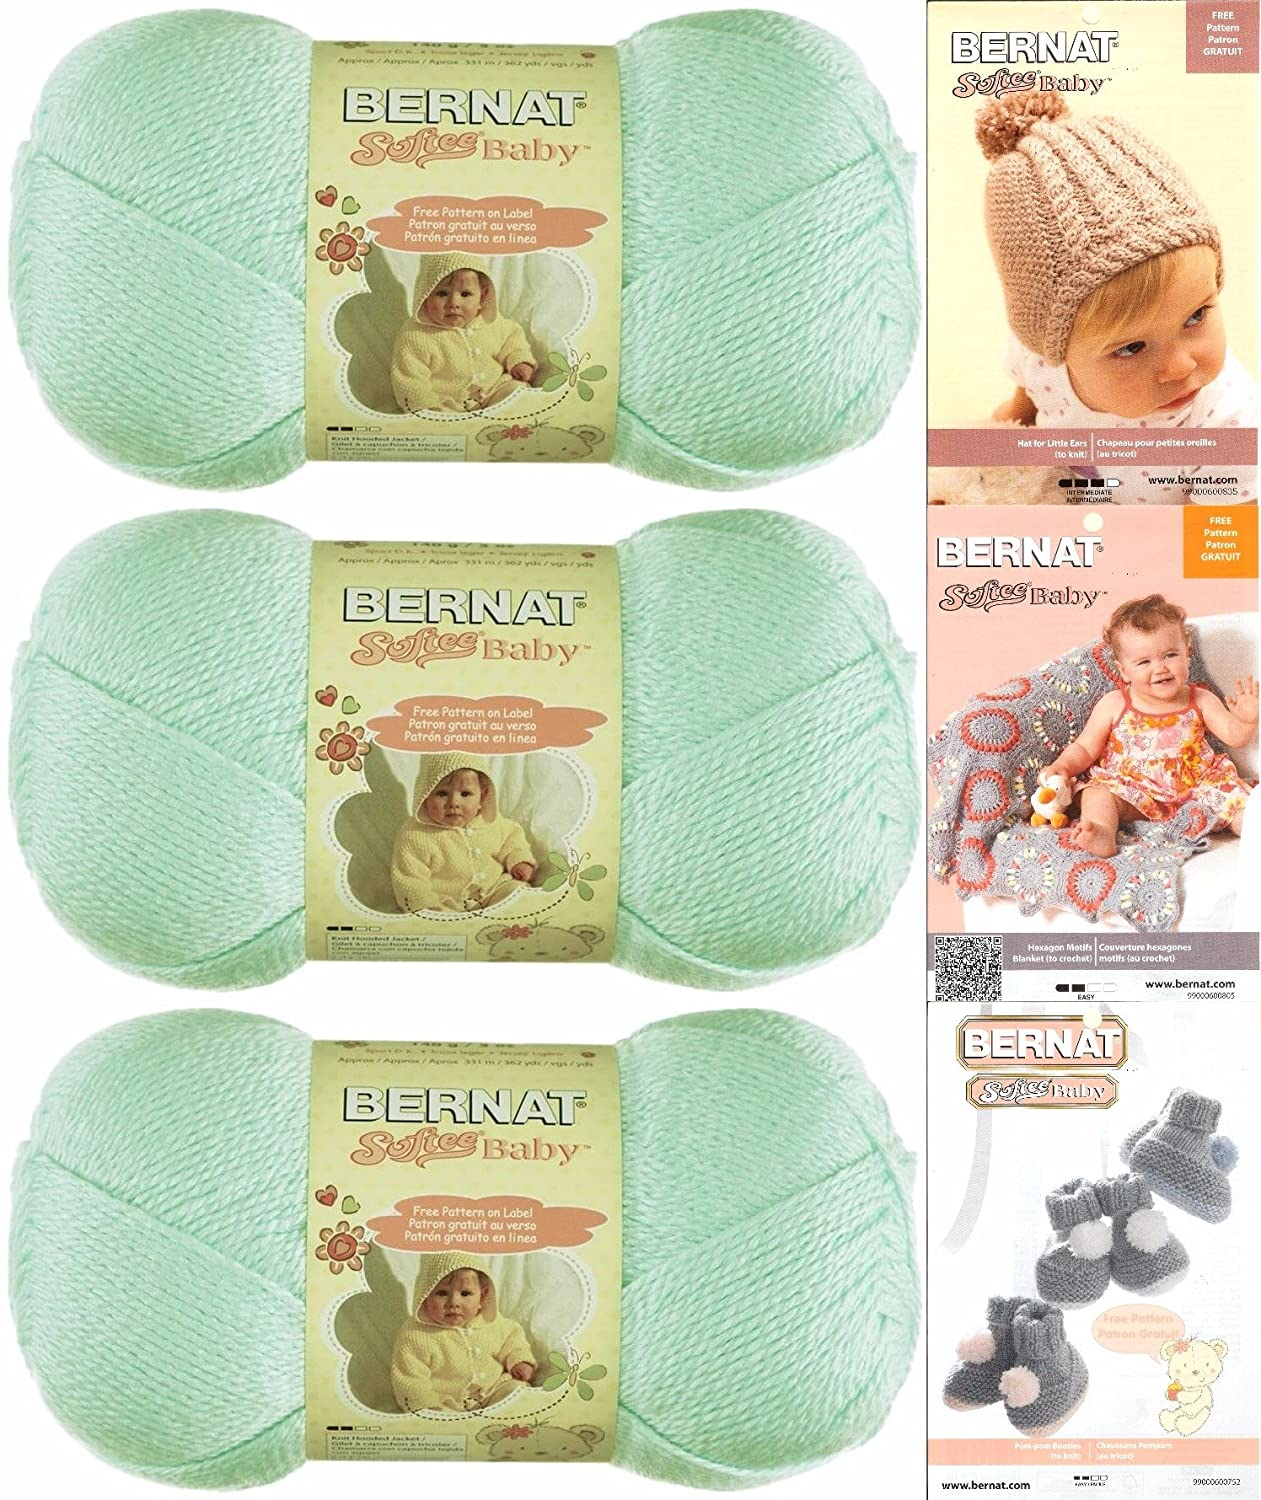 Bernat Softee Baby Yarn 3 Pack Bundle Includes 3 Patterns Dk